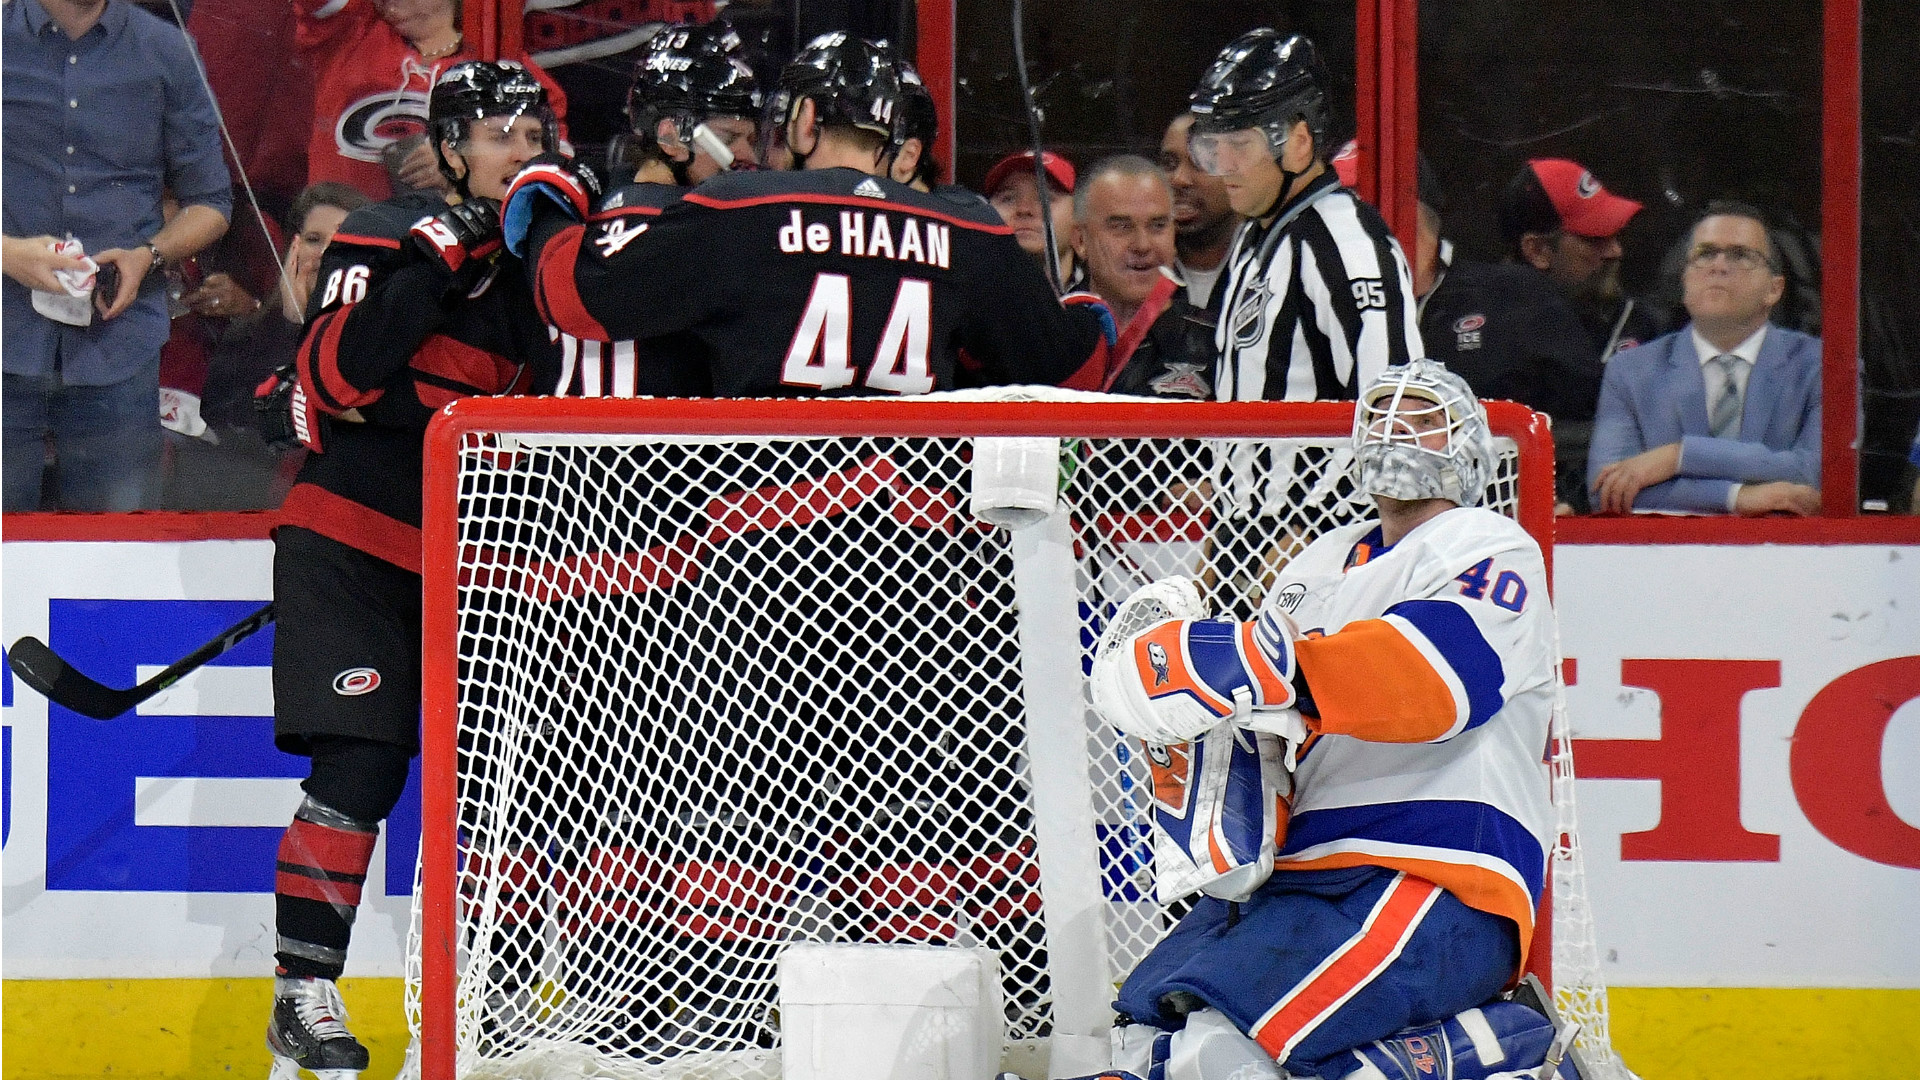 NHL playoffs 2019: Islanders become first team since 1993 to be swept after sweeping previous round